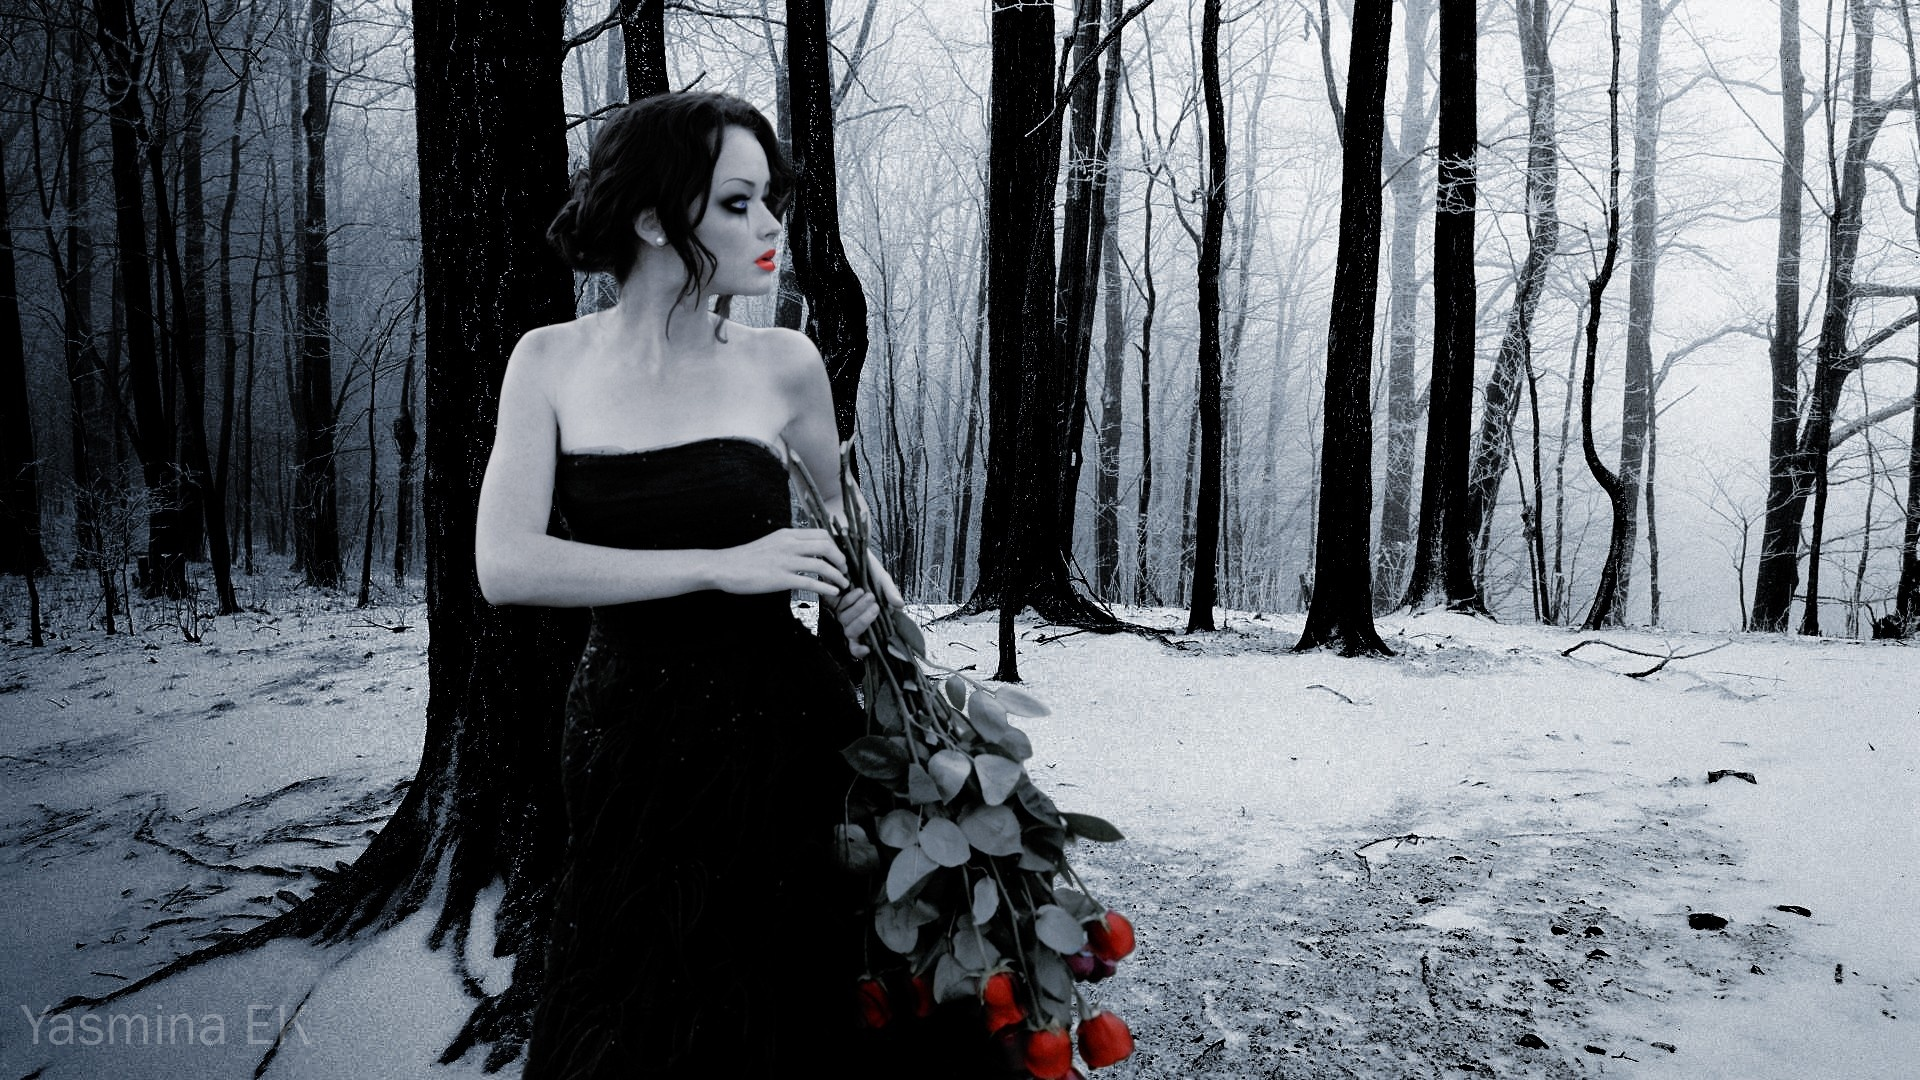 mood gothic pale bouquet roses love romance alone nature